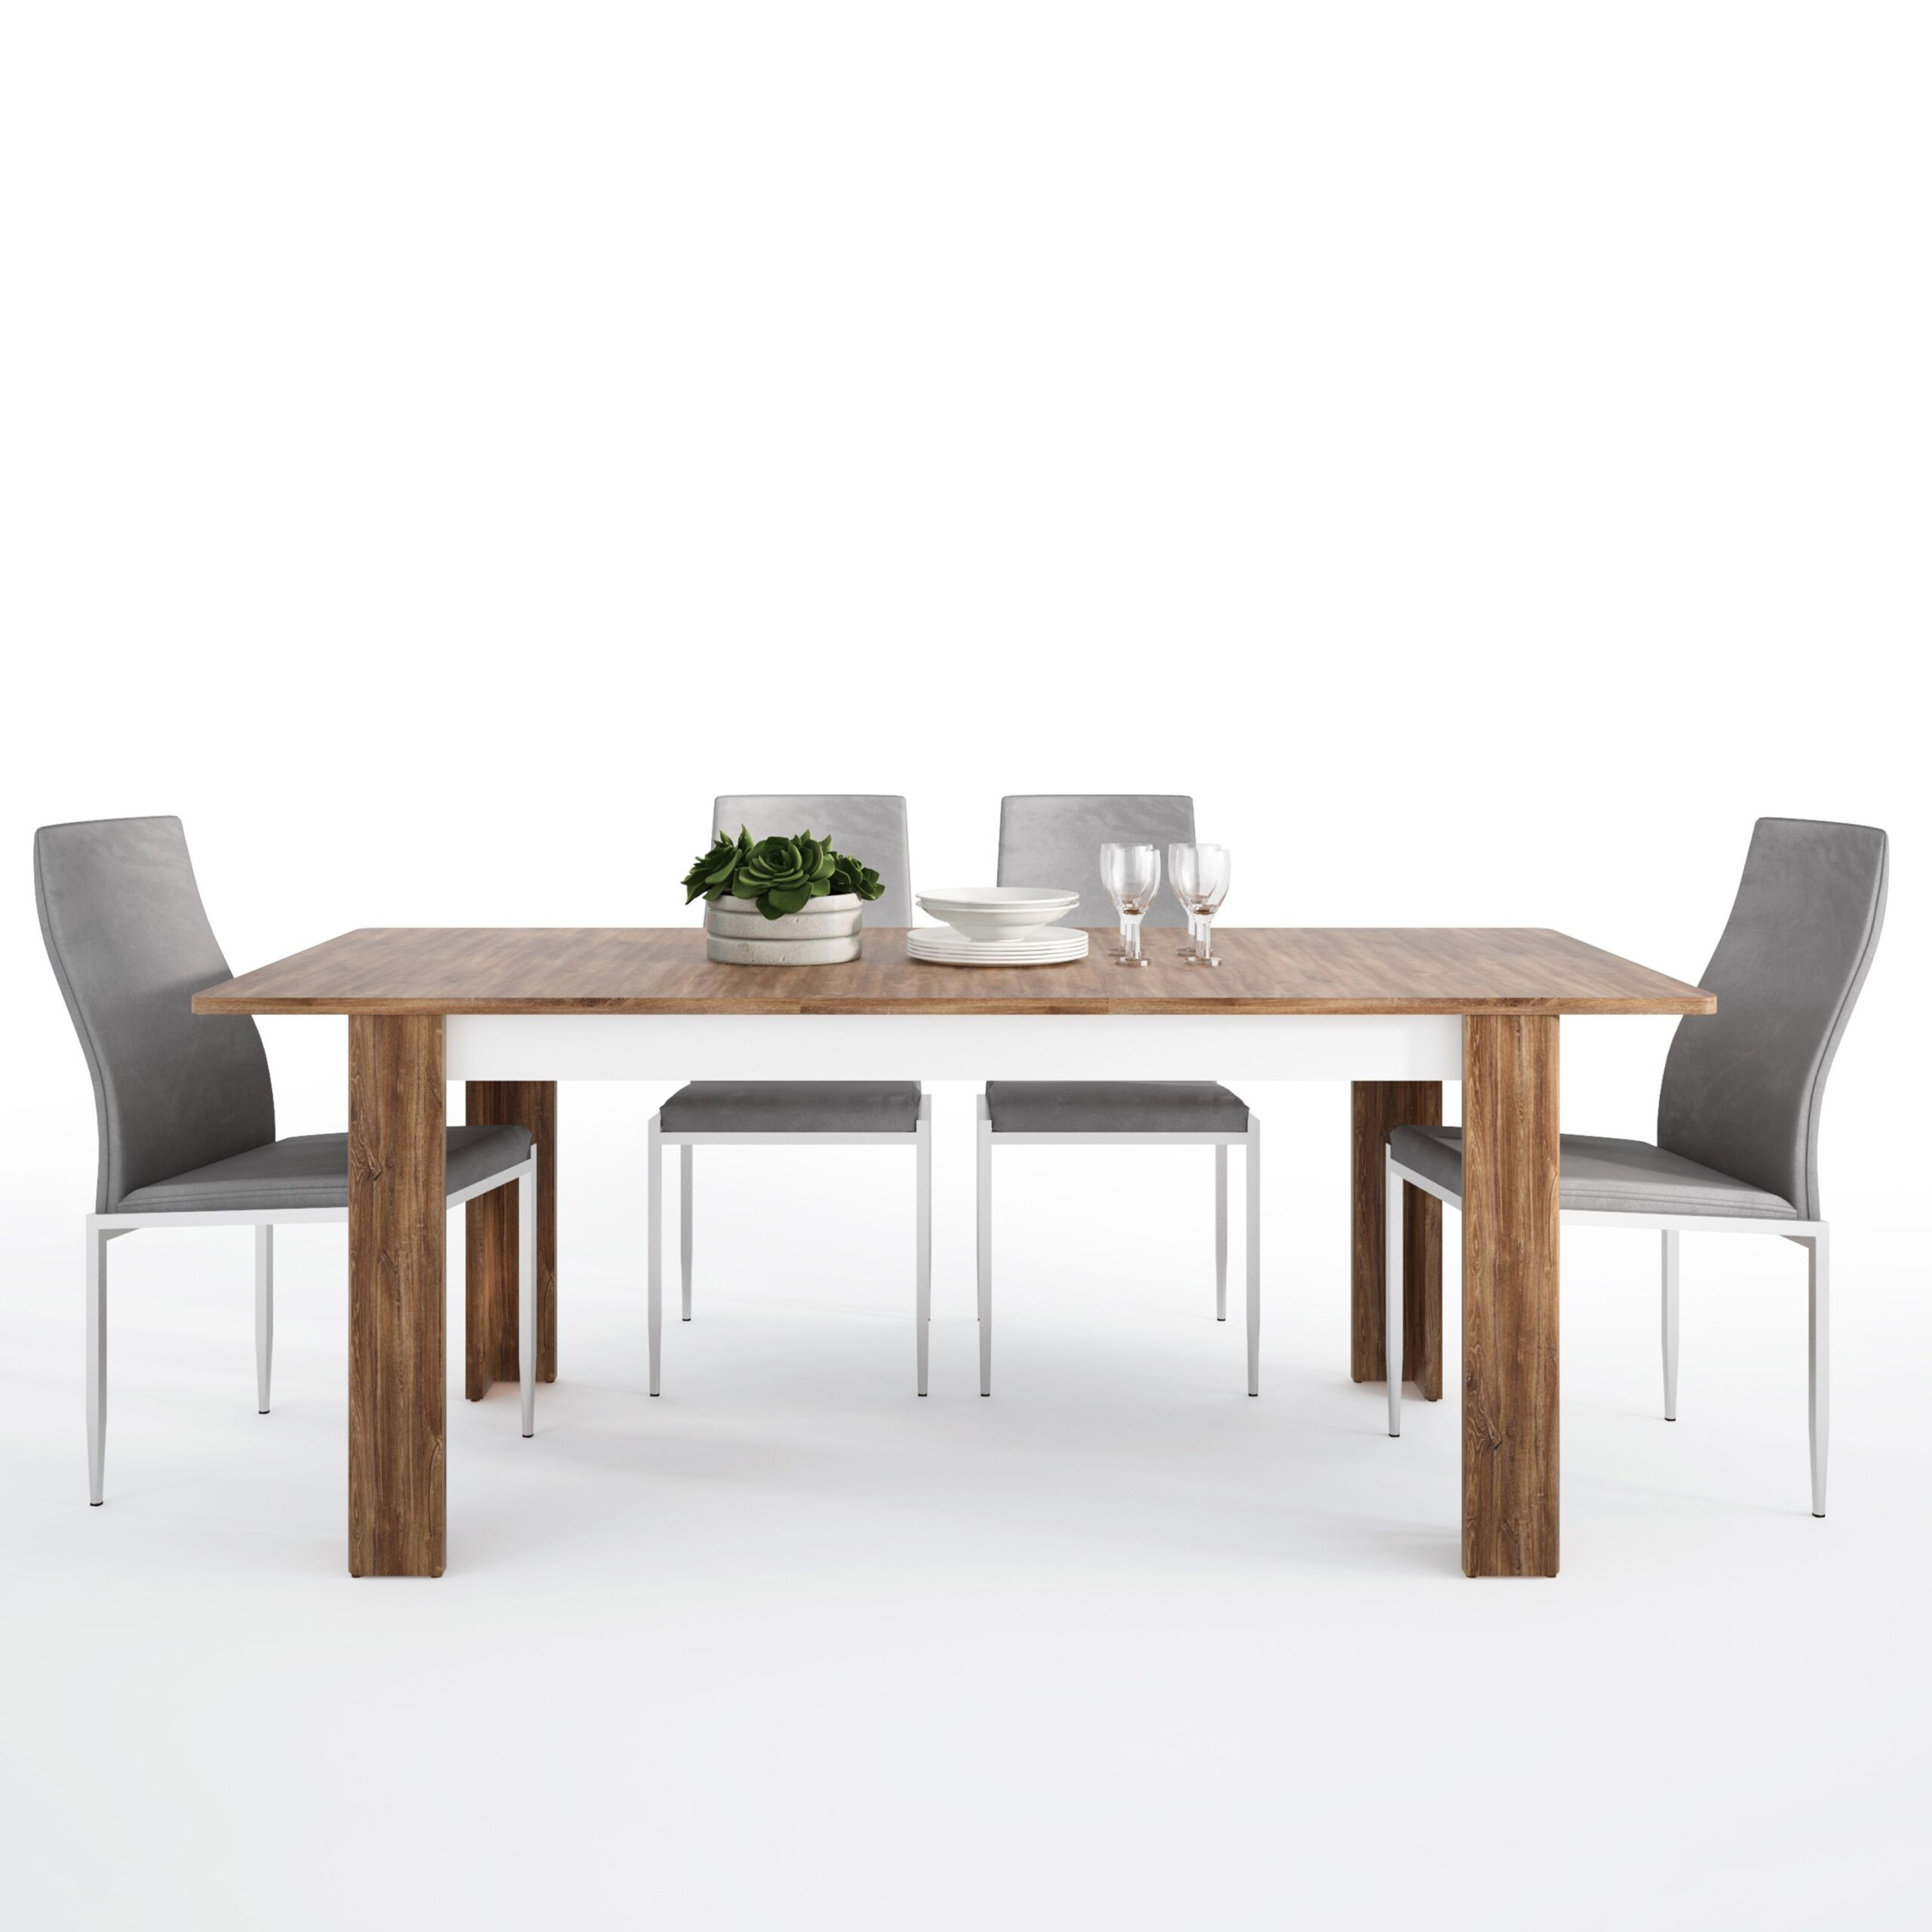 Delly Dining set package Delly extending dining table + 4 Lillie High Back Chair Grey.